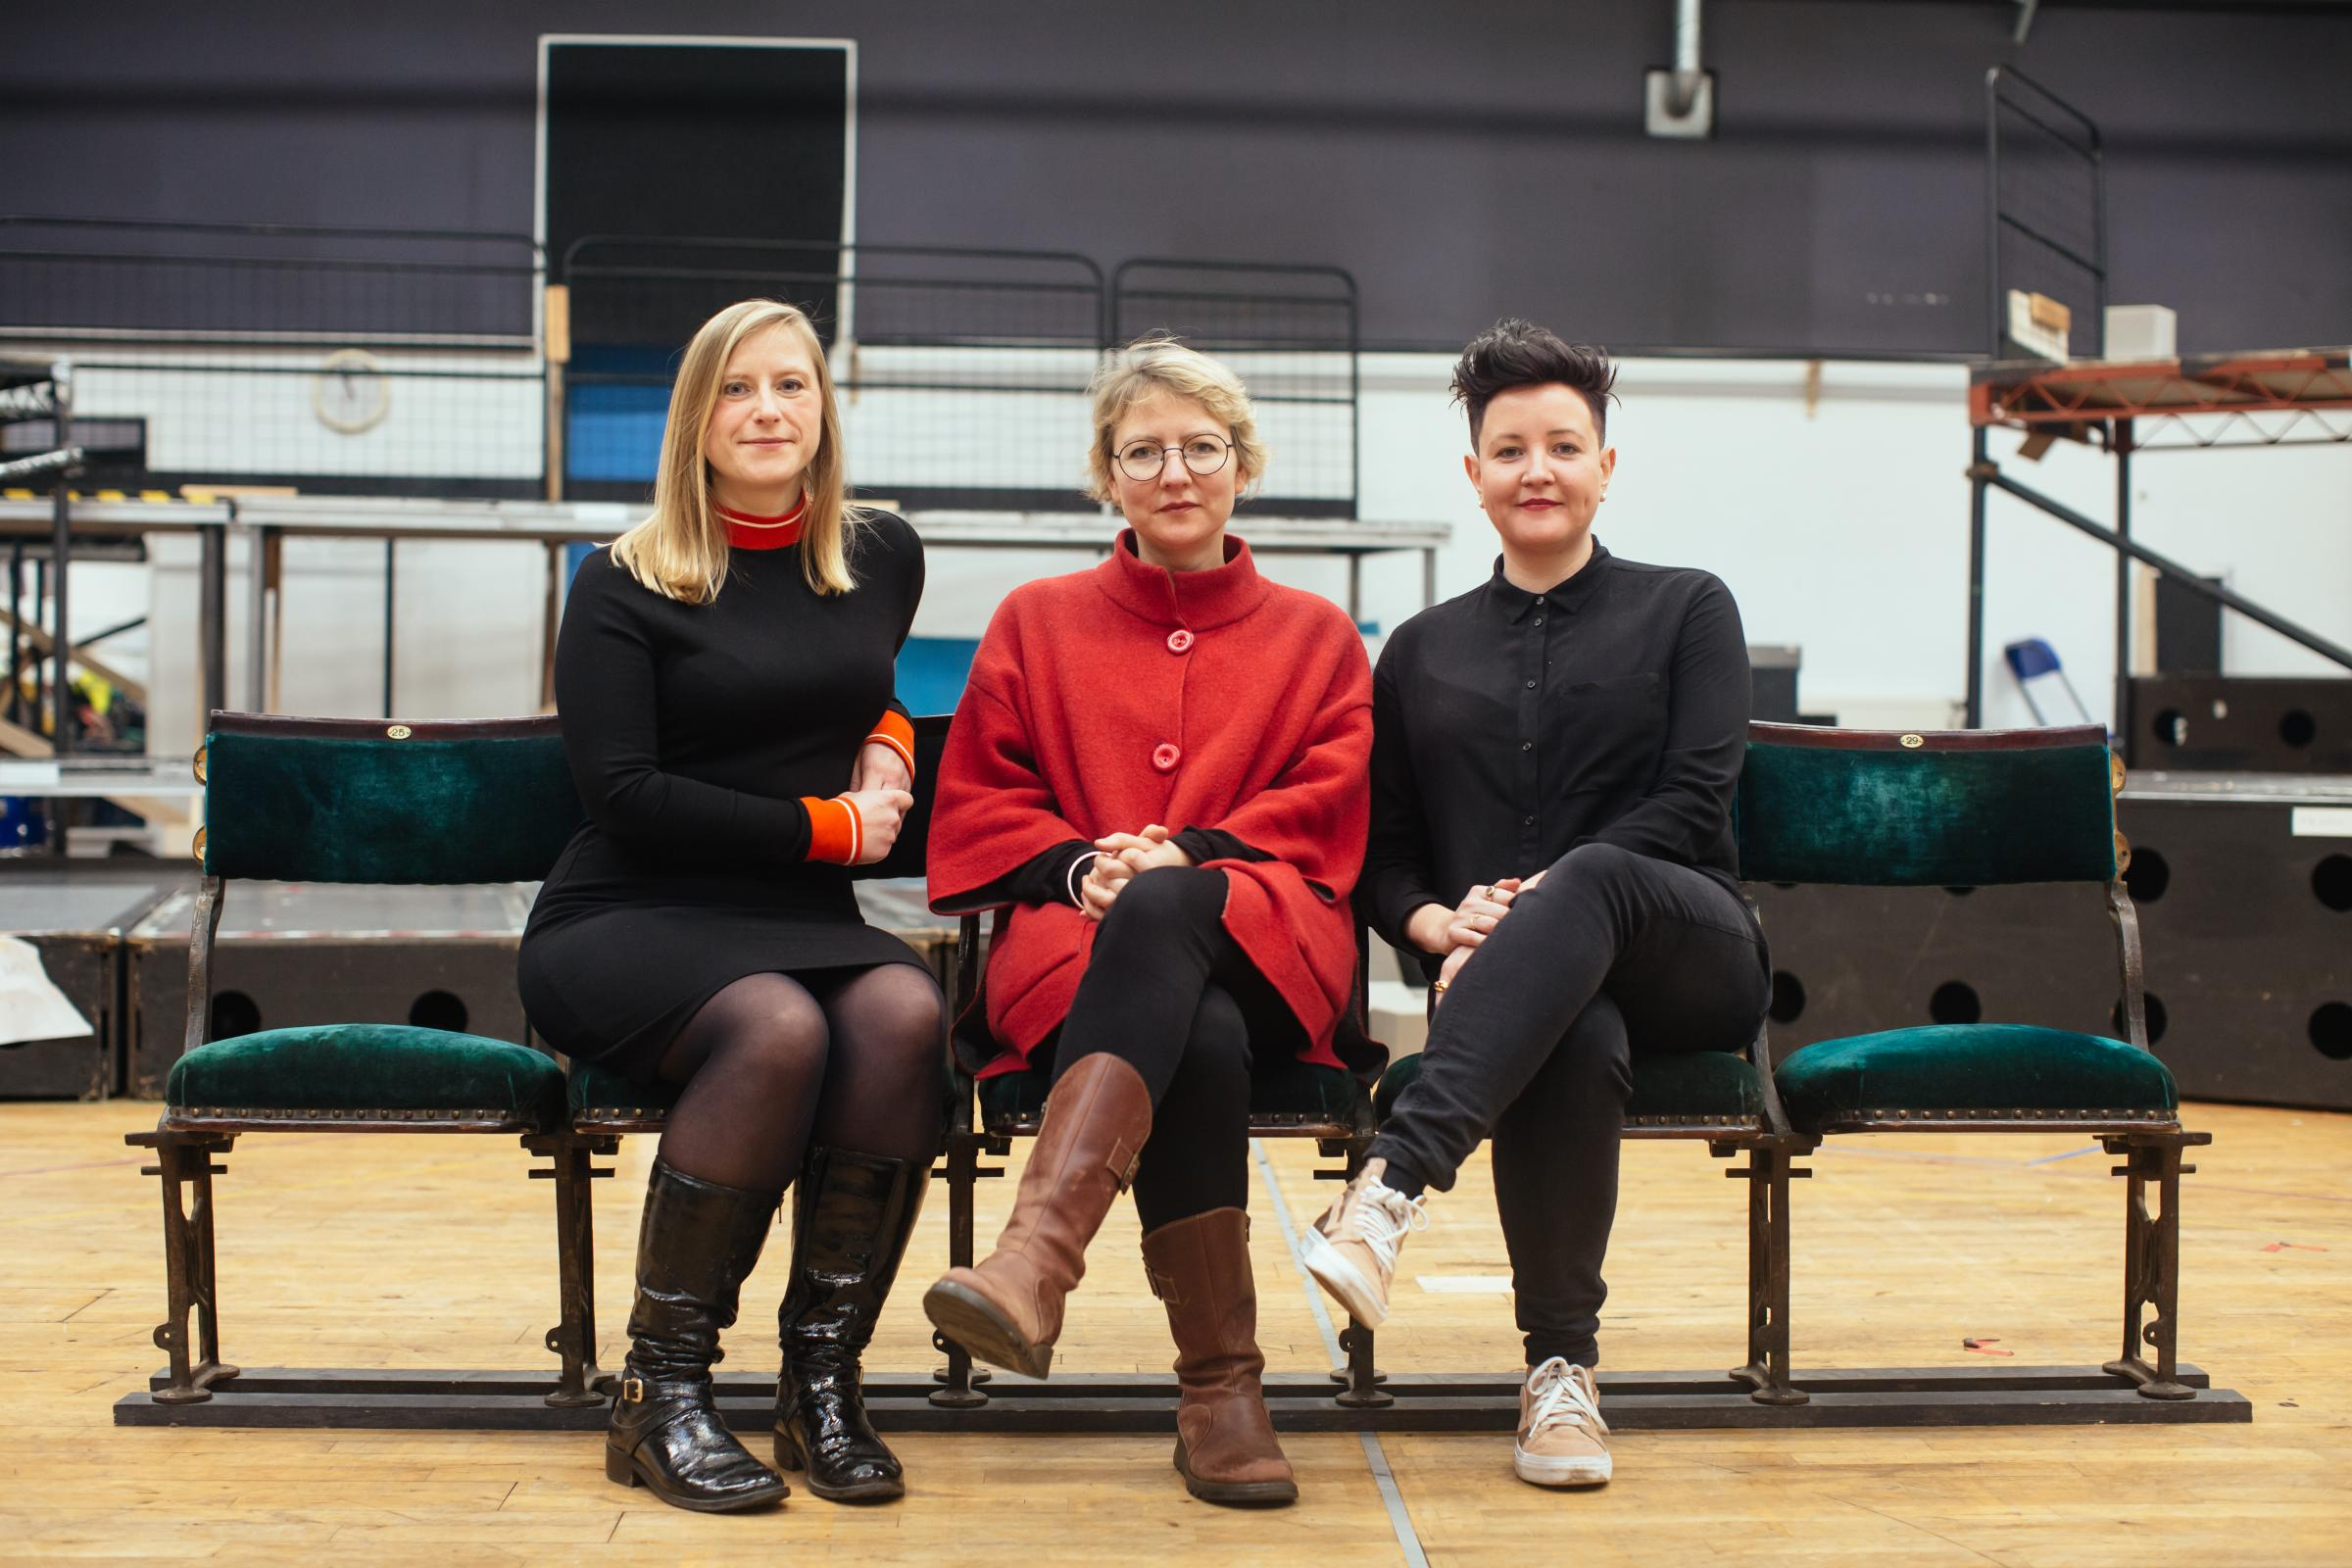 Frances Poet, Zinnie Harris and Stef Smith at the Citizens Theatre 2019 season announcement. Image Jassy Earl